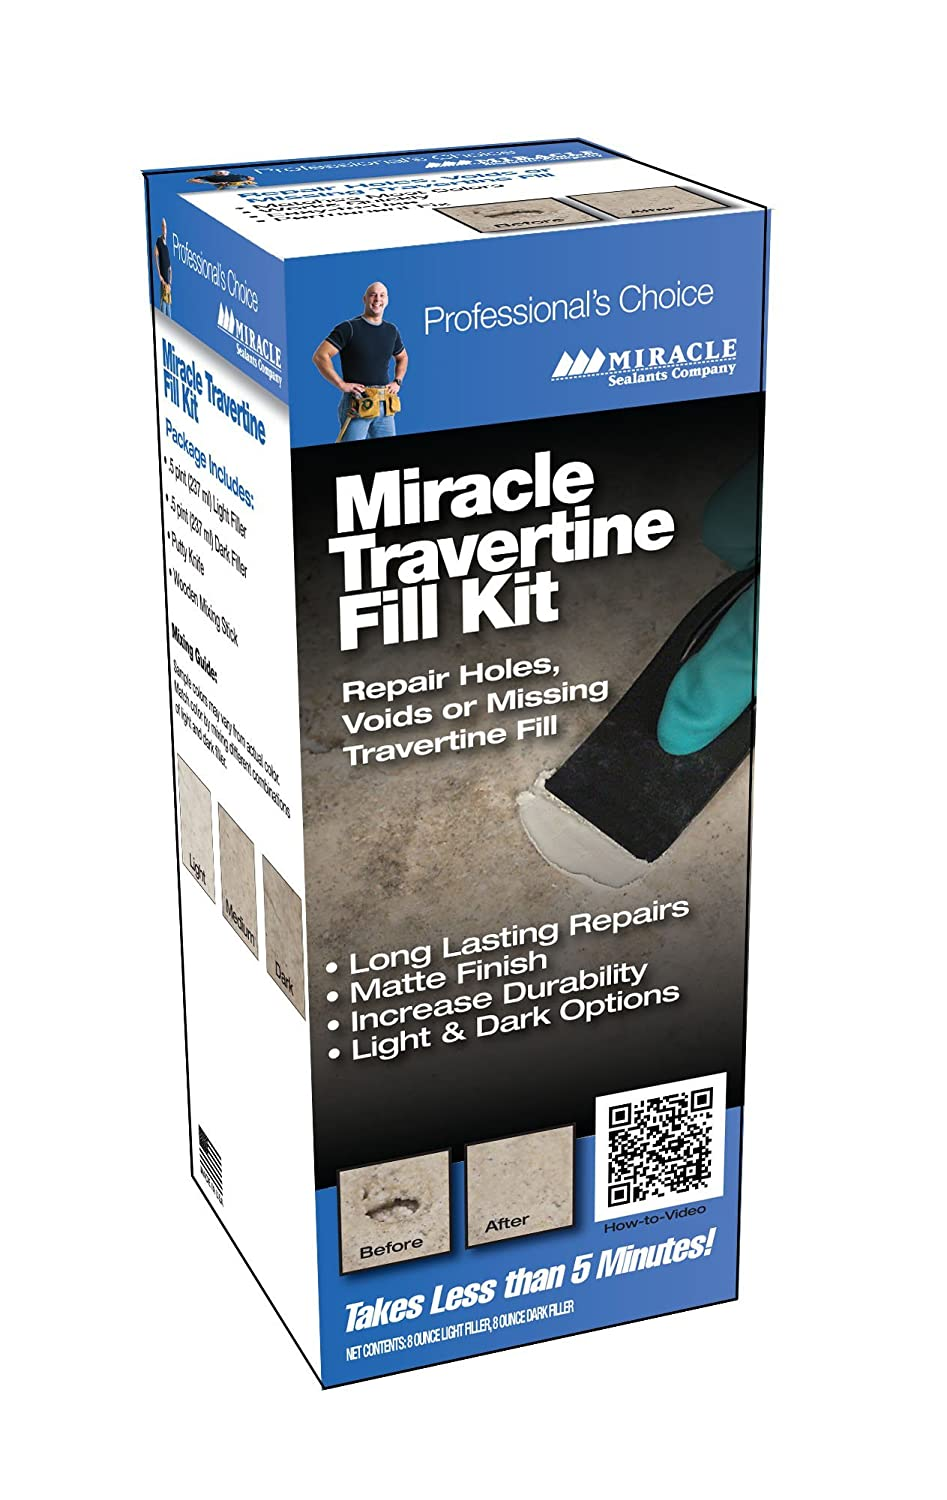 Miracle Sealants Travertine Fill Kit - for Crack & Hole Repair on Limestone, Terrazzo & Unpolished Stone TRAV FIL 6/1